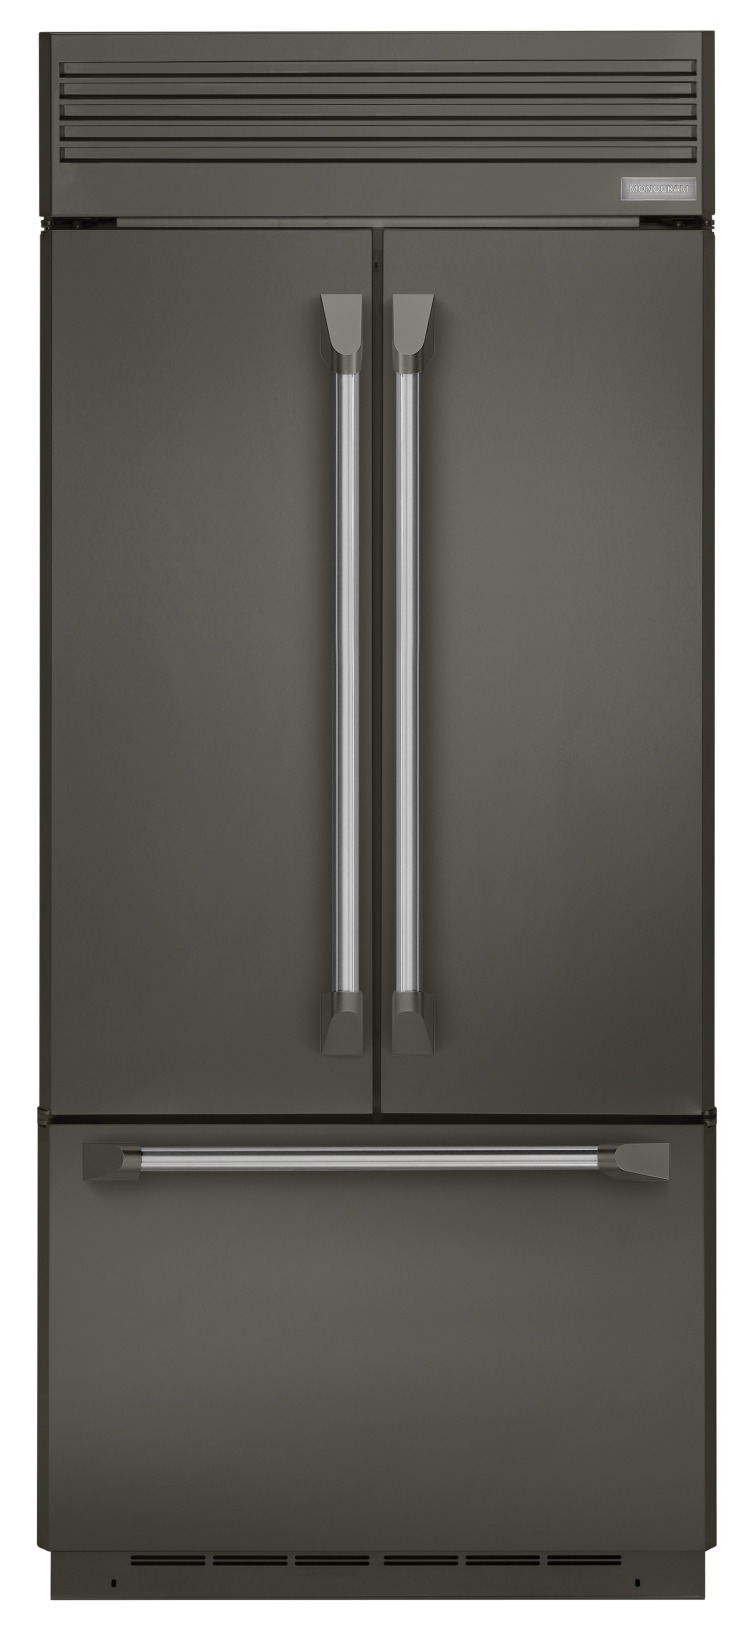 Graphite_built-in refrigerator